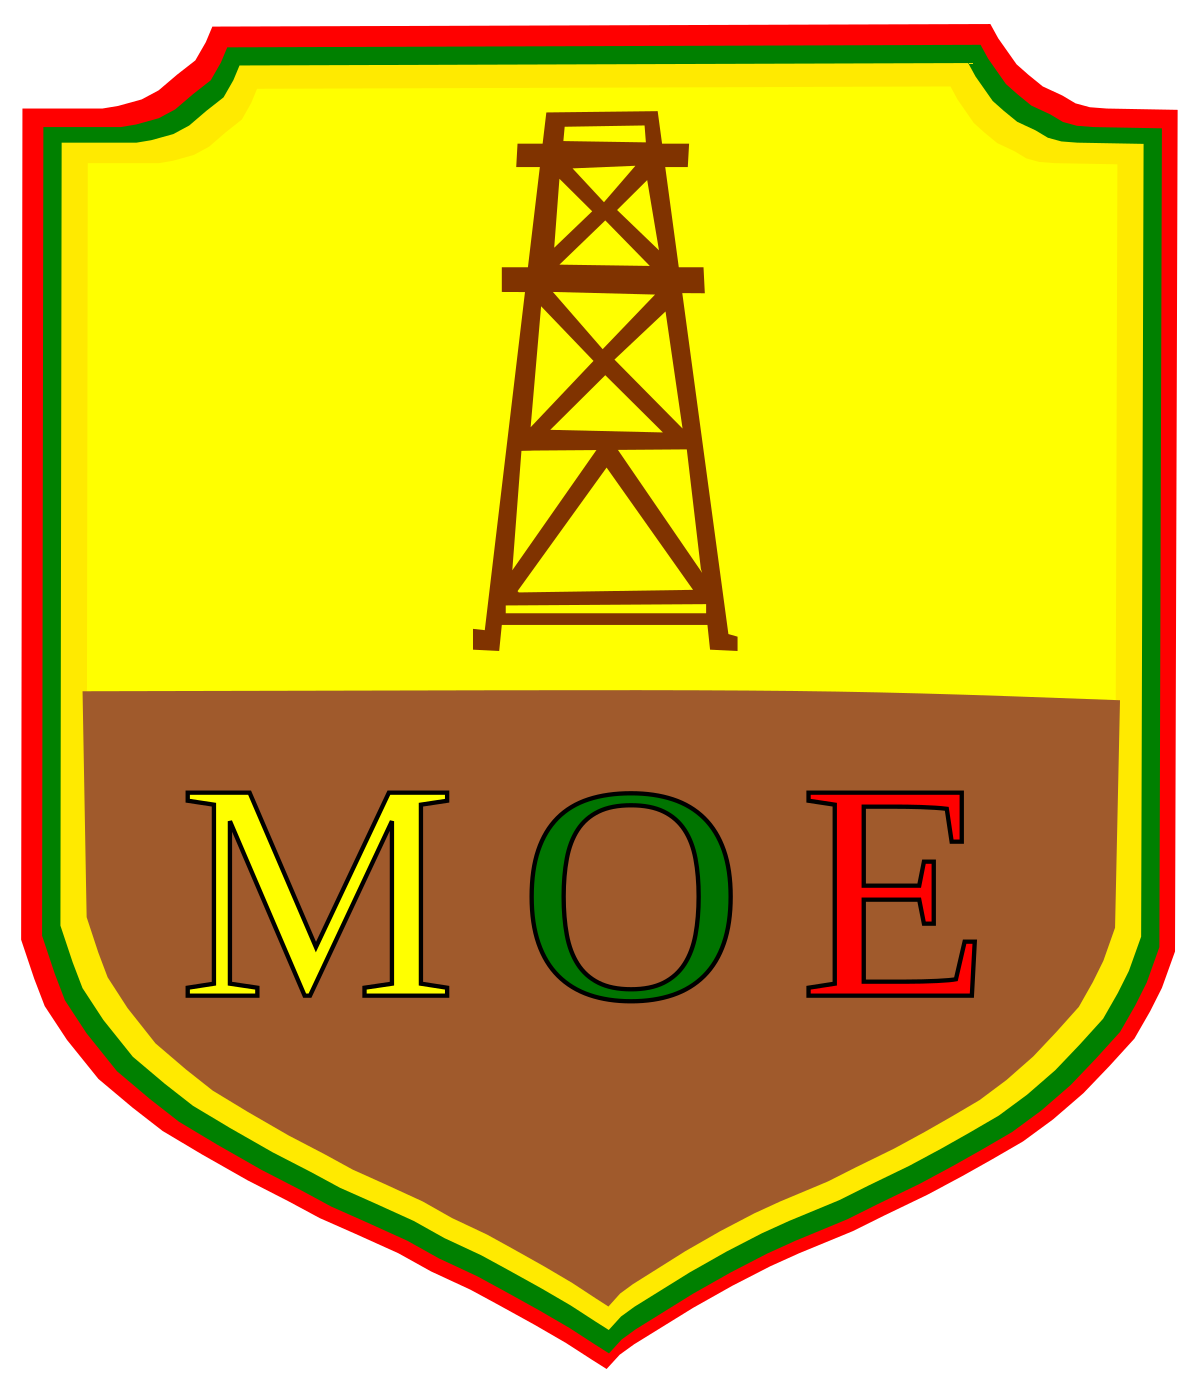 Puma energy clipart job vacancies image free Ministry of Energy (Myanmar) - Wikipedia image free